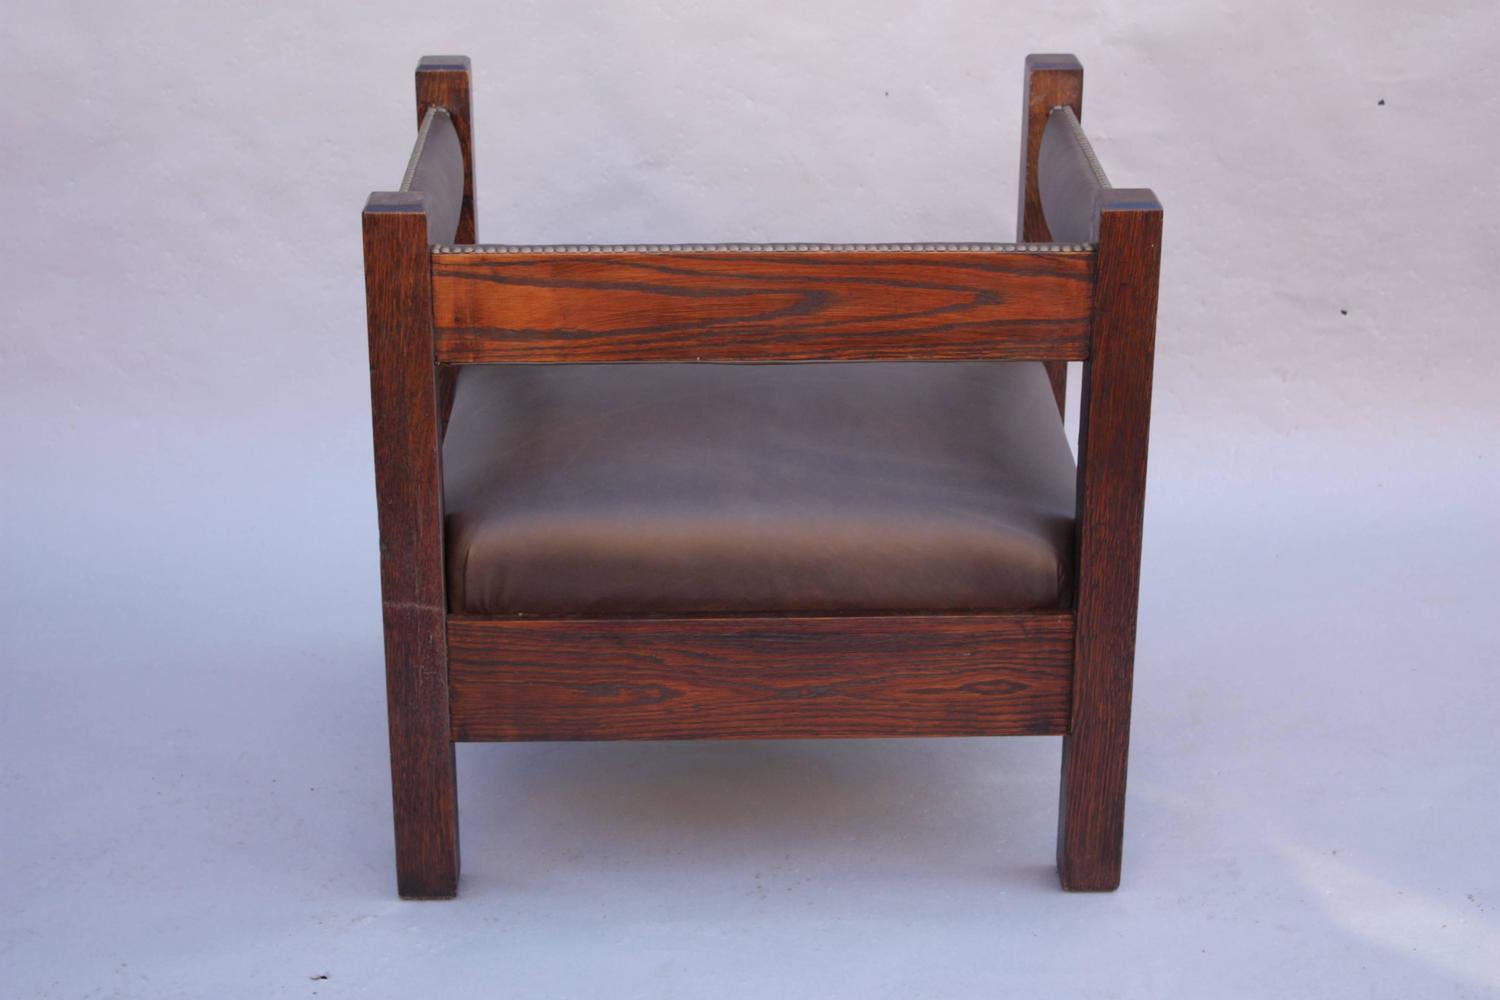 mission chairs for sale low profile chair antique arts and crafts cube at 1stdibs